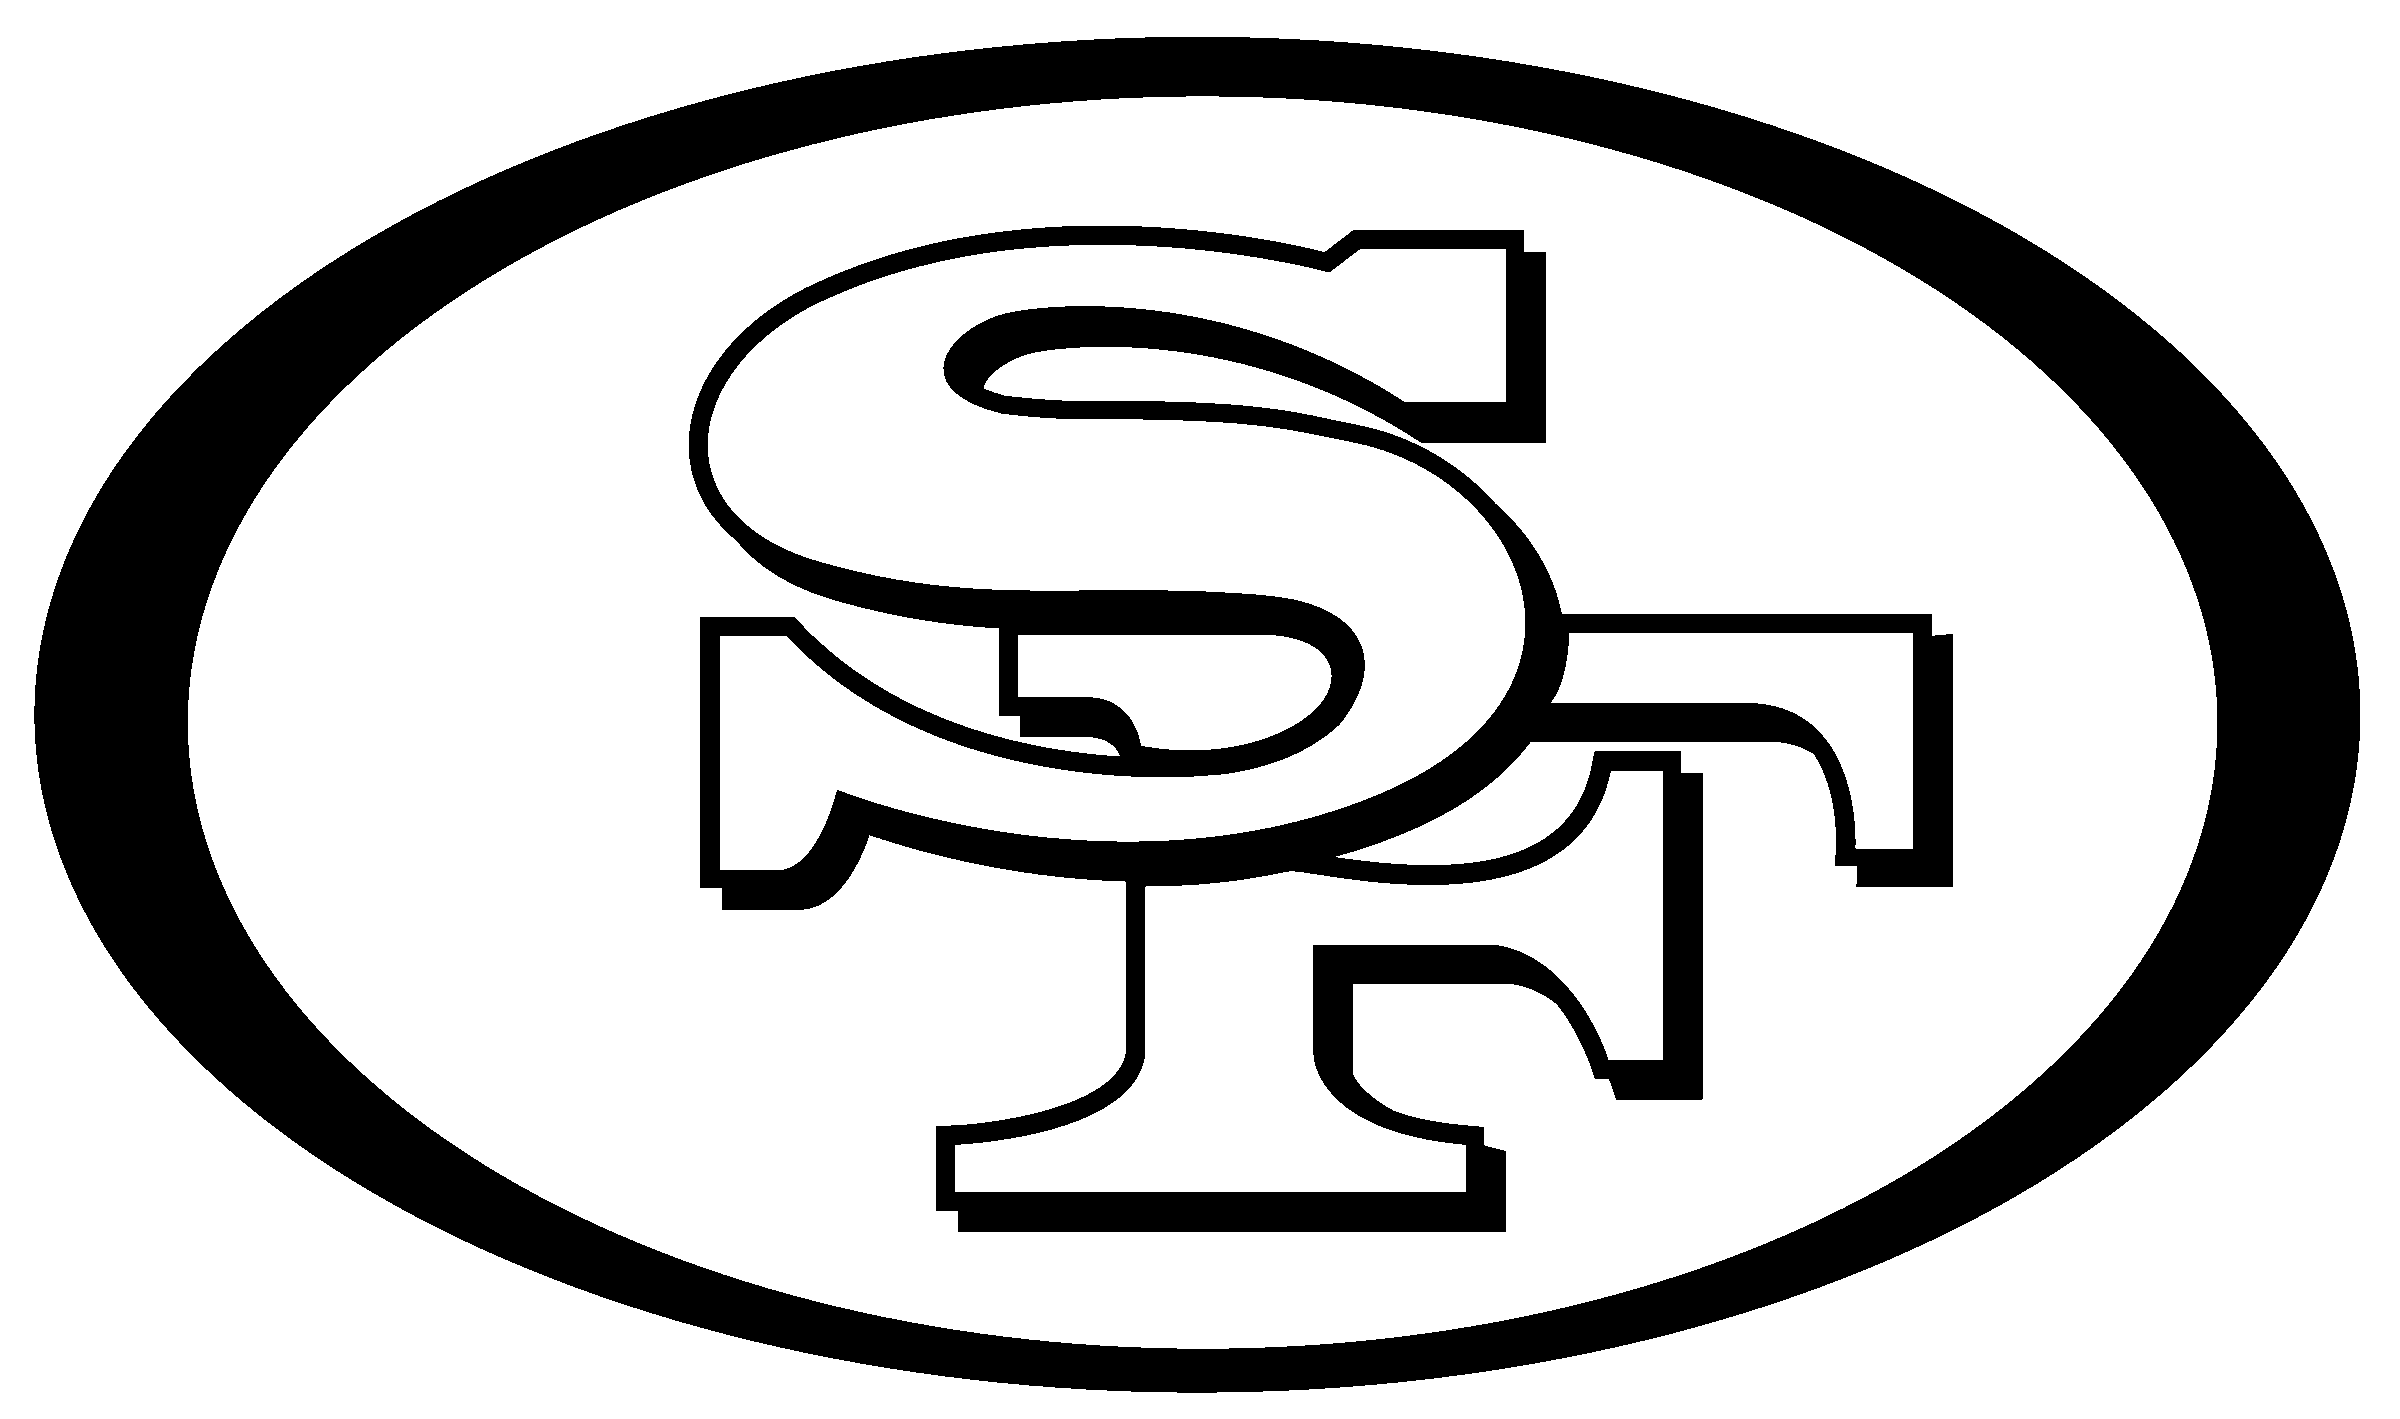 49ers black and white clipart image transparent HD San Francisco 49ers, Nfl, Decal, Black And White, Text - Logos ... image transparent